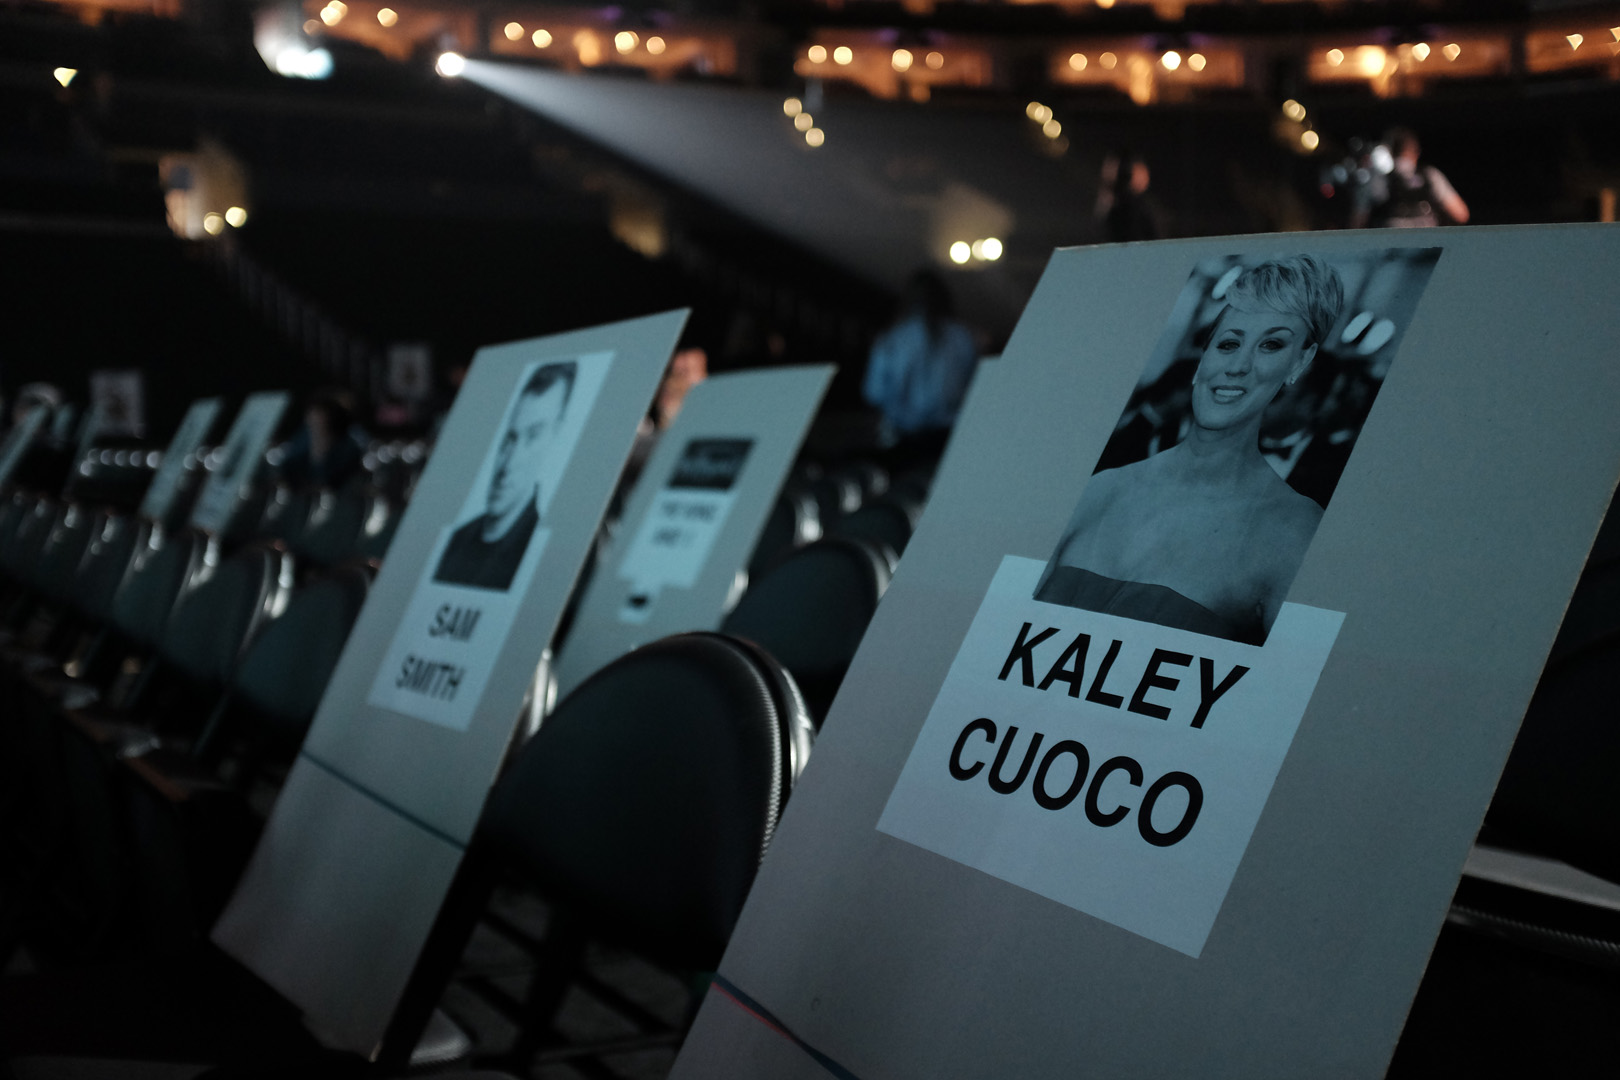 Sam Smith and Kaley Cuoco will sit side-by-side at the GRAMMYs.